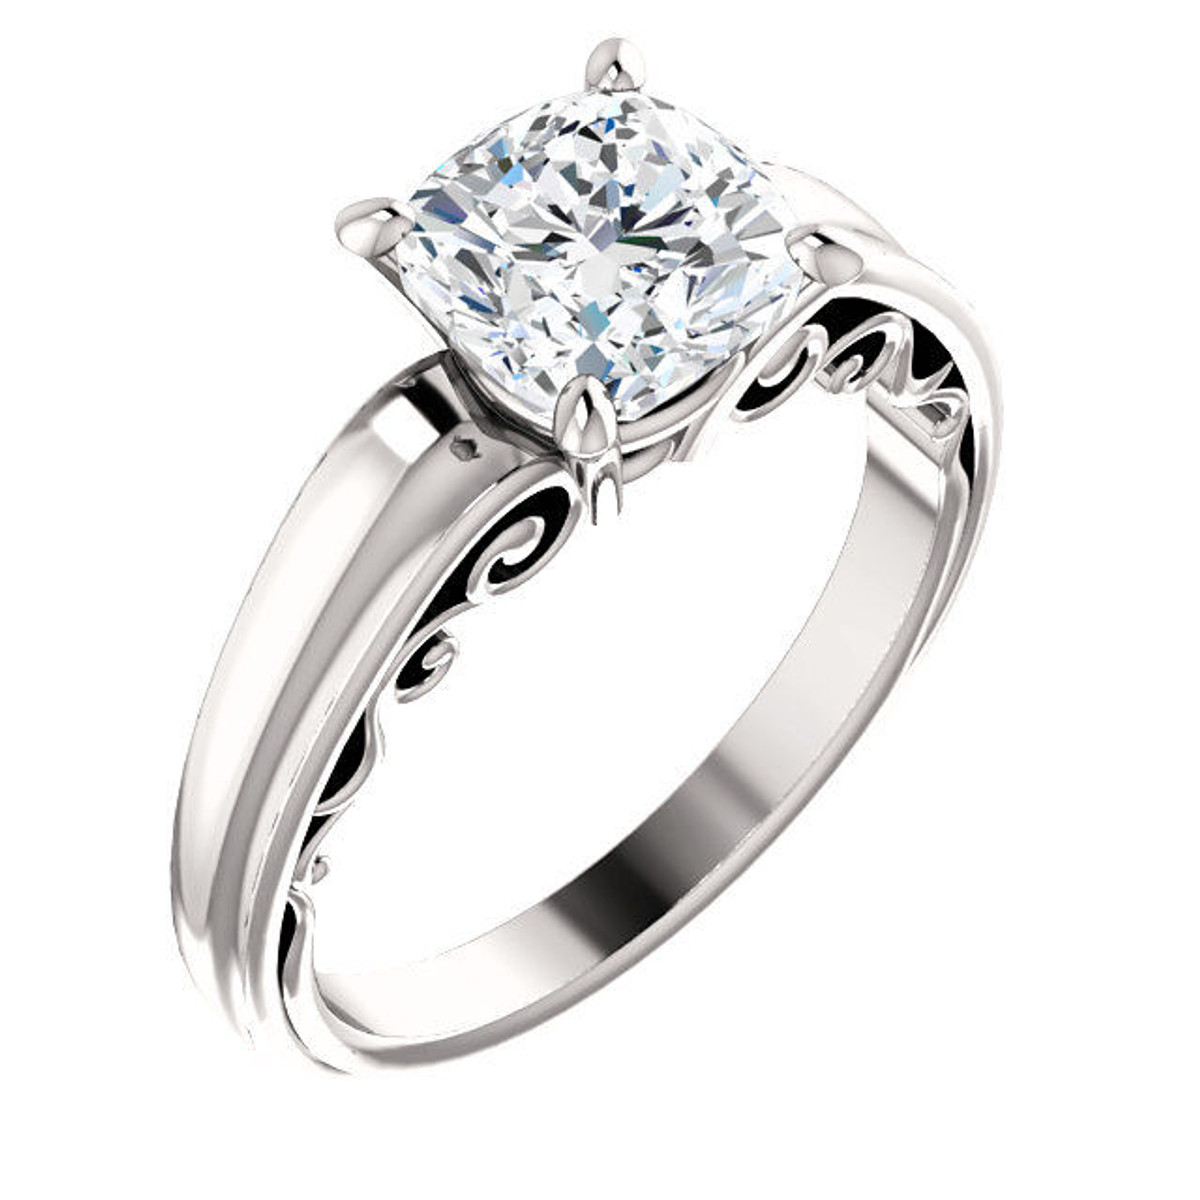 14Kt White Gold Cushion Cut Solitaire Engagement Ring